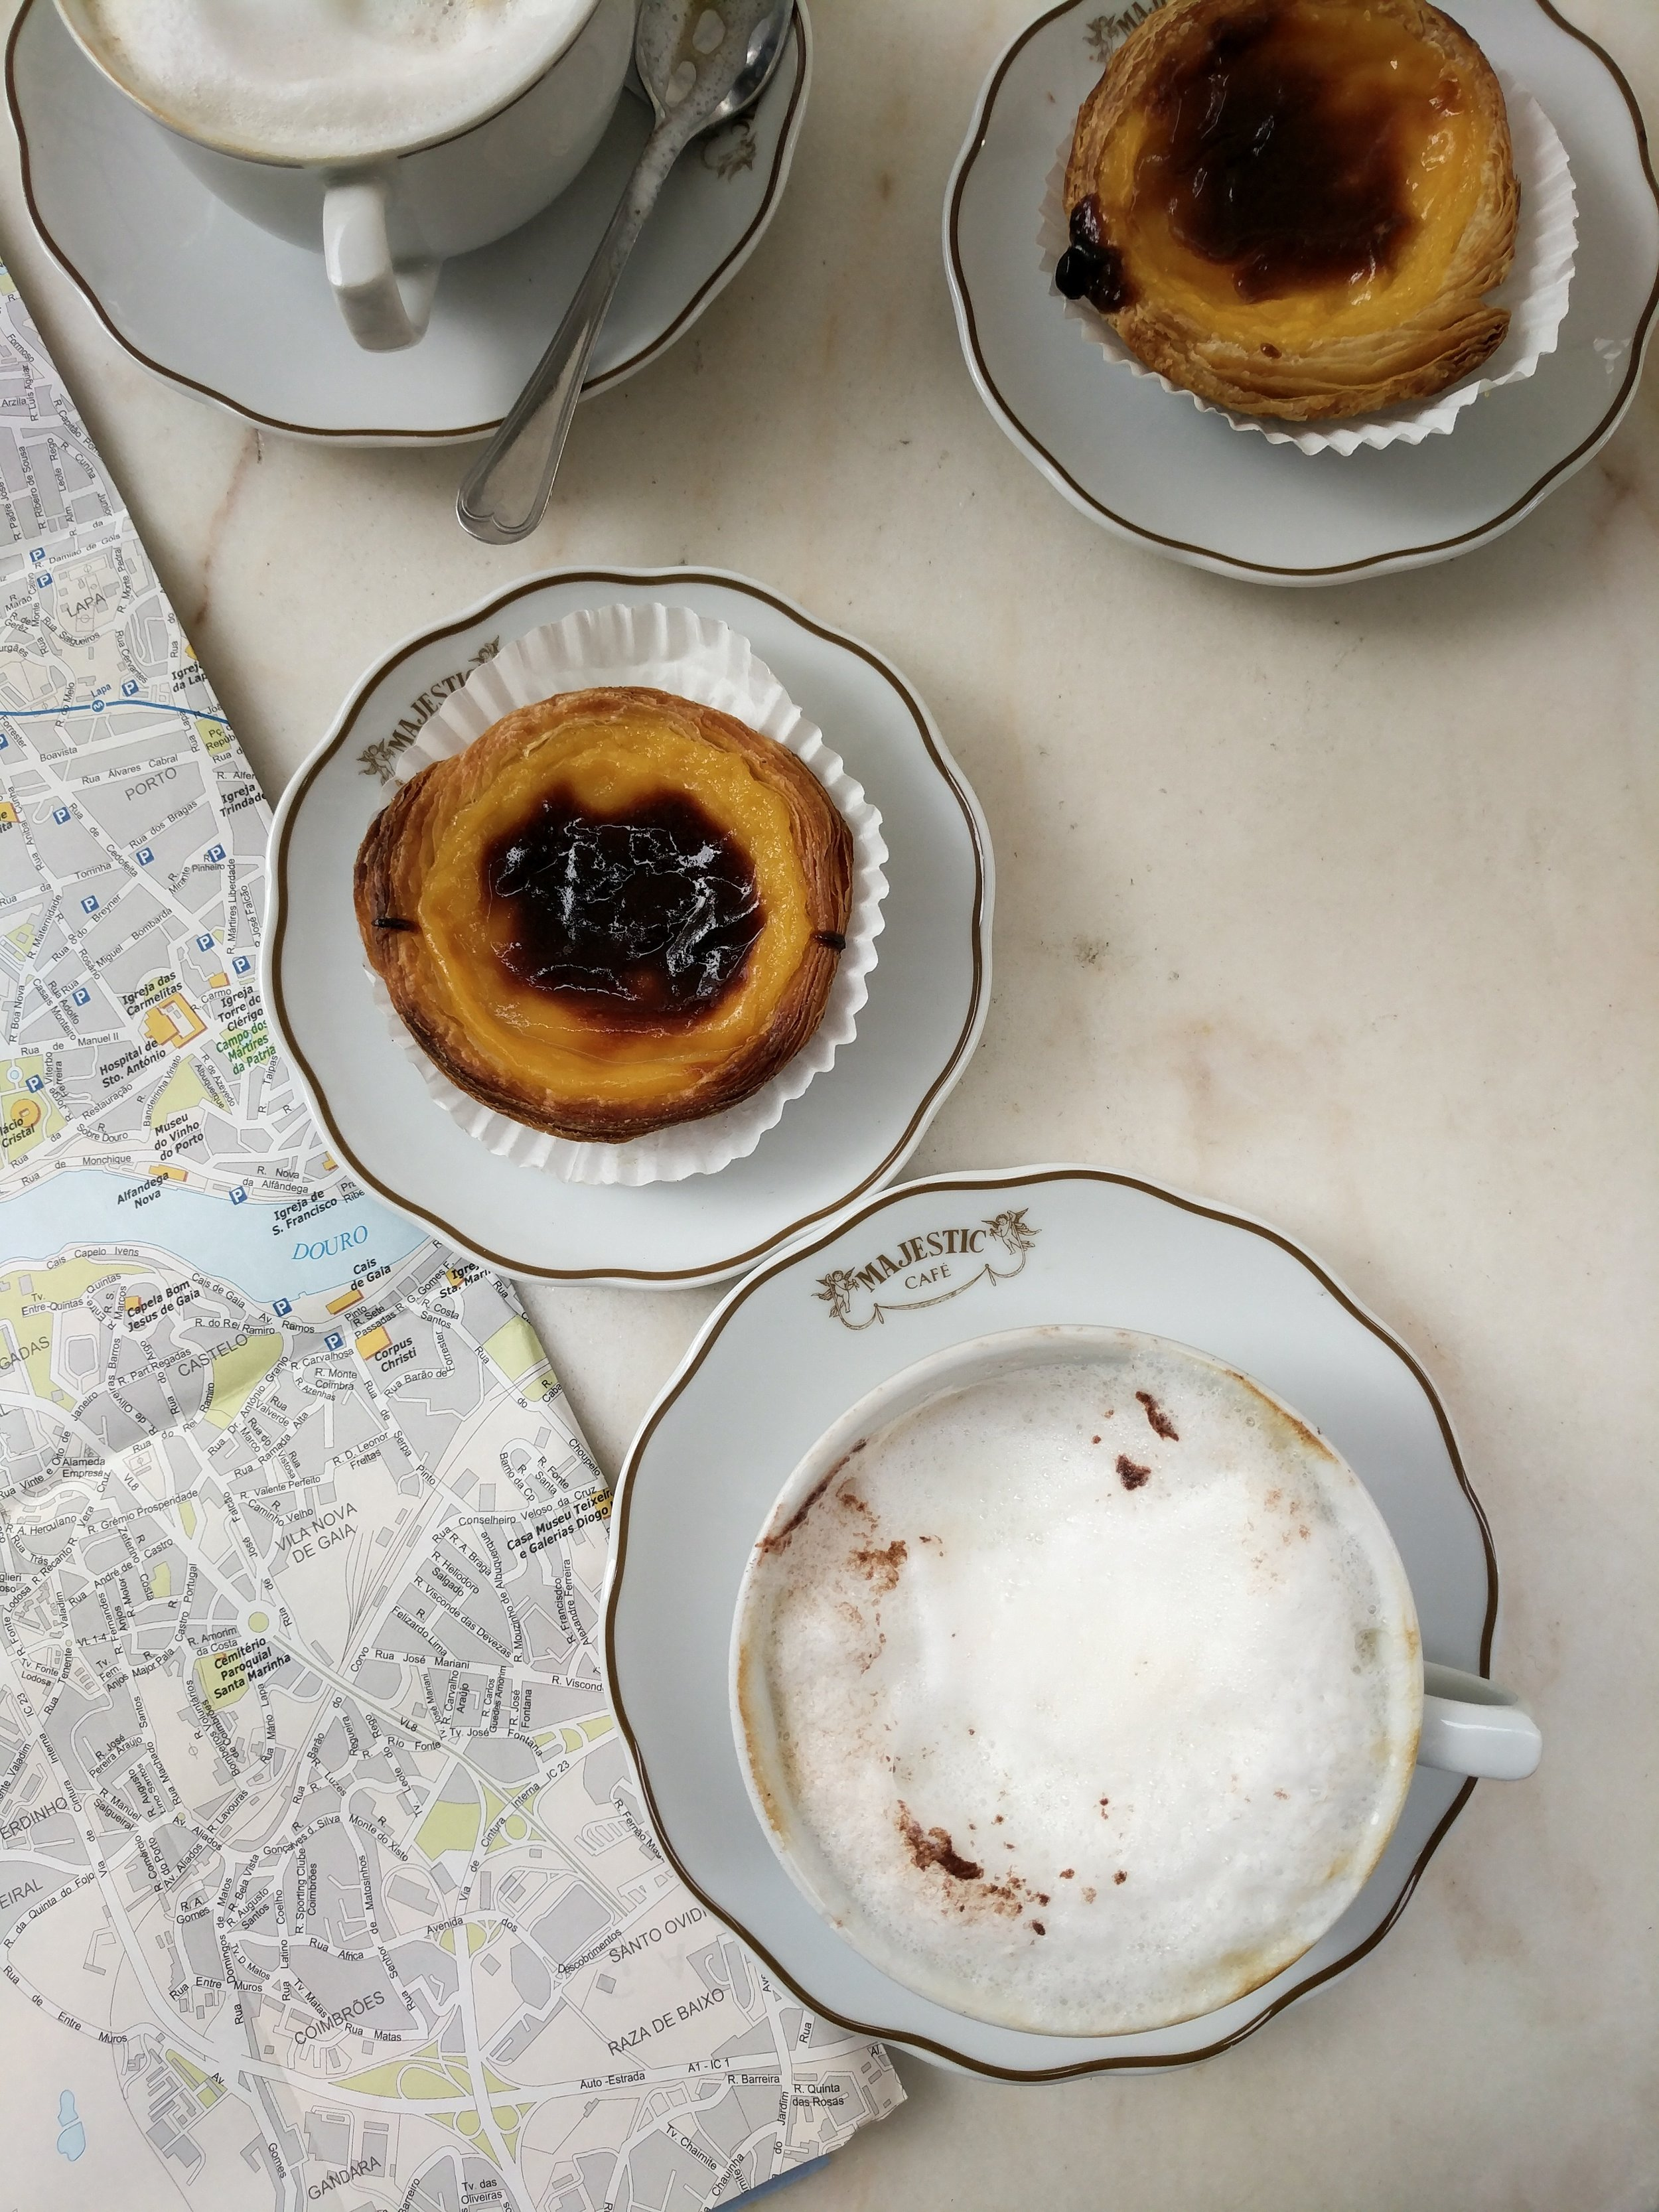 Cappuccino and Pastel de Nata at Majestic Cafe